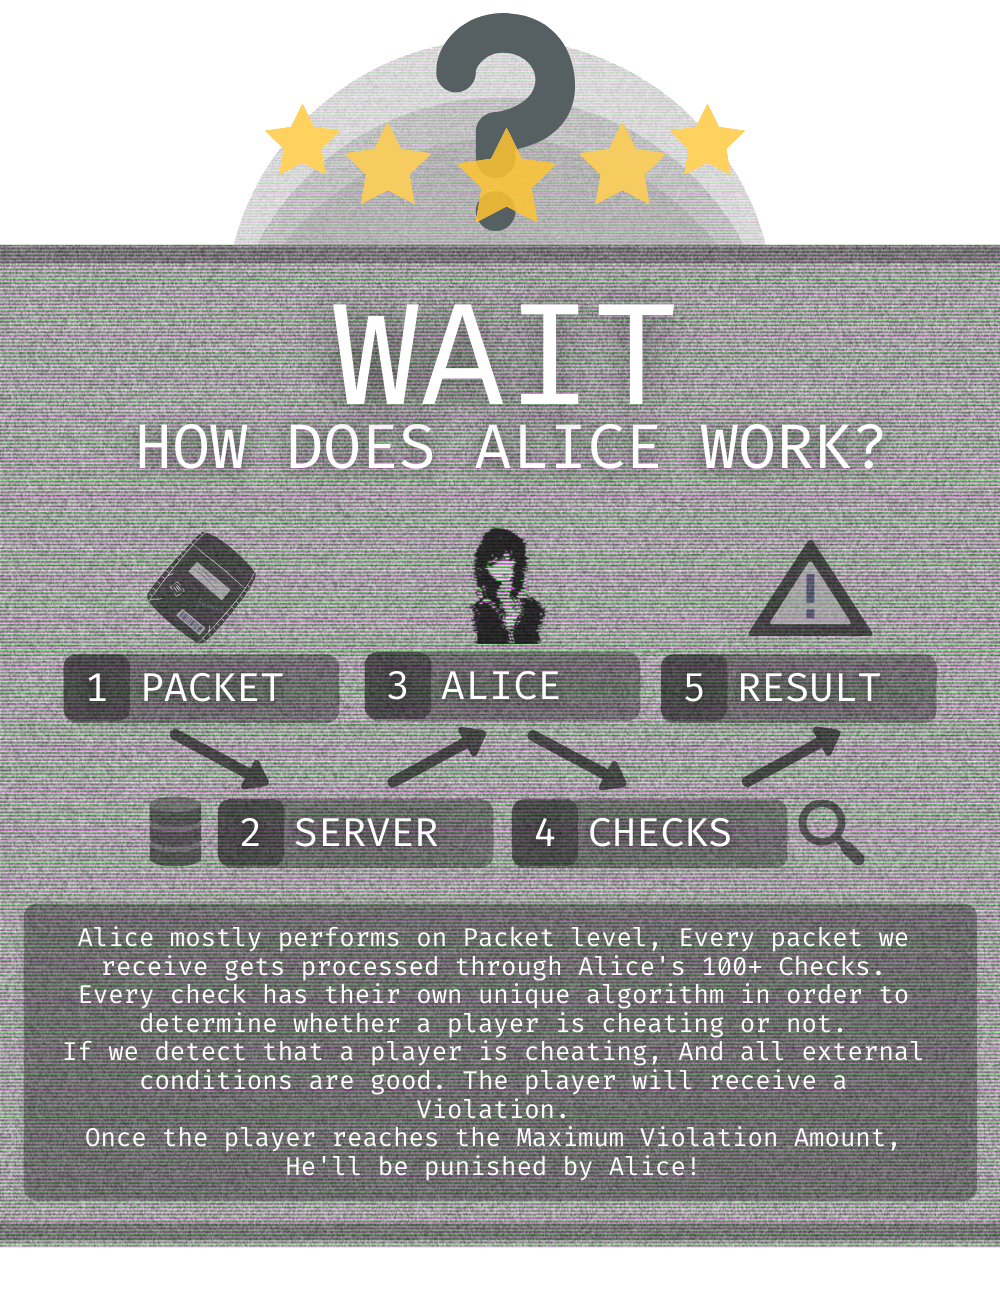 HOW%20DOES%20ALICE%20WORK.png